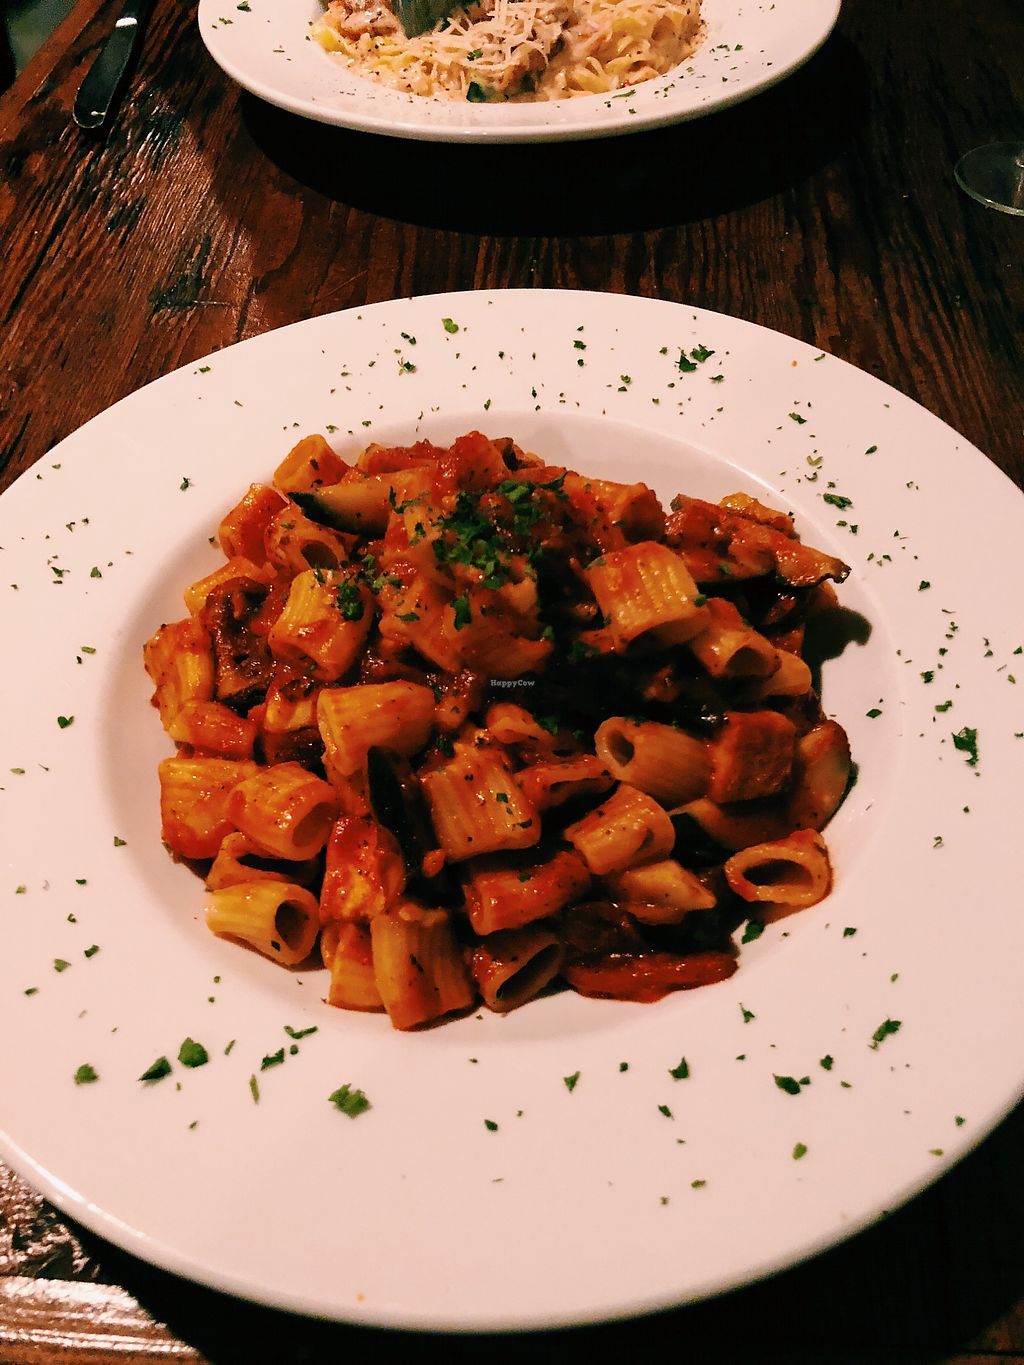 "Photo of Placido's Pasta Shop  by <a href=""/members/profile/evanorman"">evanorman</a> <br/>The 'Walrus' with seared tofu <br/> January 27, 2018  - <a href='/contact/abuse/image/110361/351541'>Report</a>"